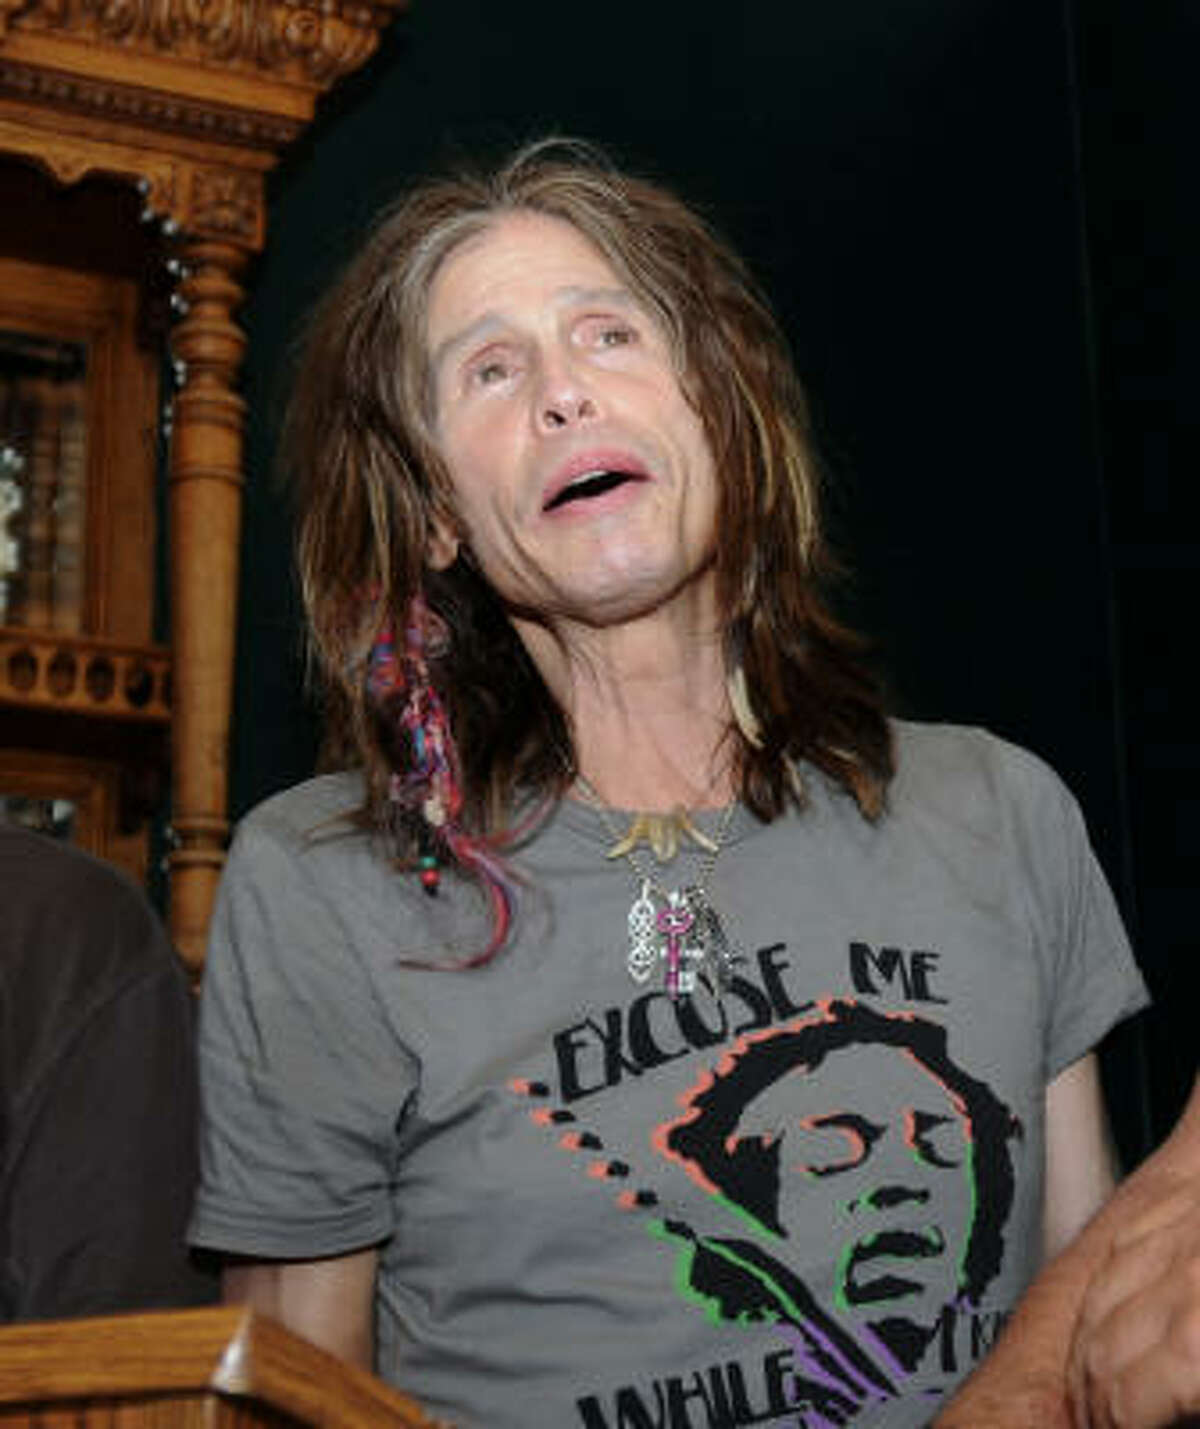 Aerosmith frontman Steven Tyler, 61, was airlifted to a hospital after falling from the stage during a concert at the Sturgis Motorcycle Rally in western South Dakota. He suffered minor injuries. Here are other famous people who have taken the plunge.